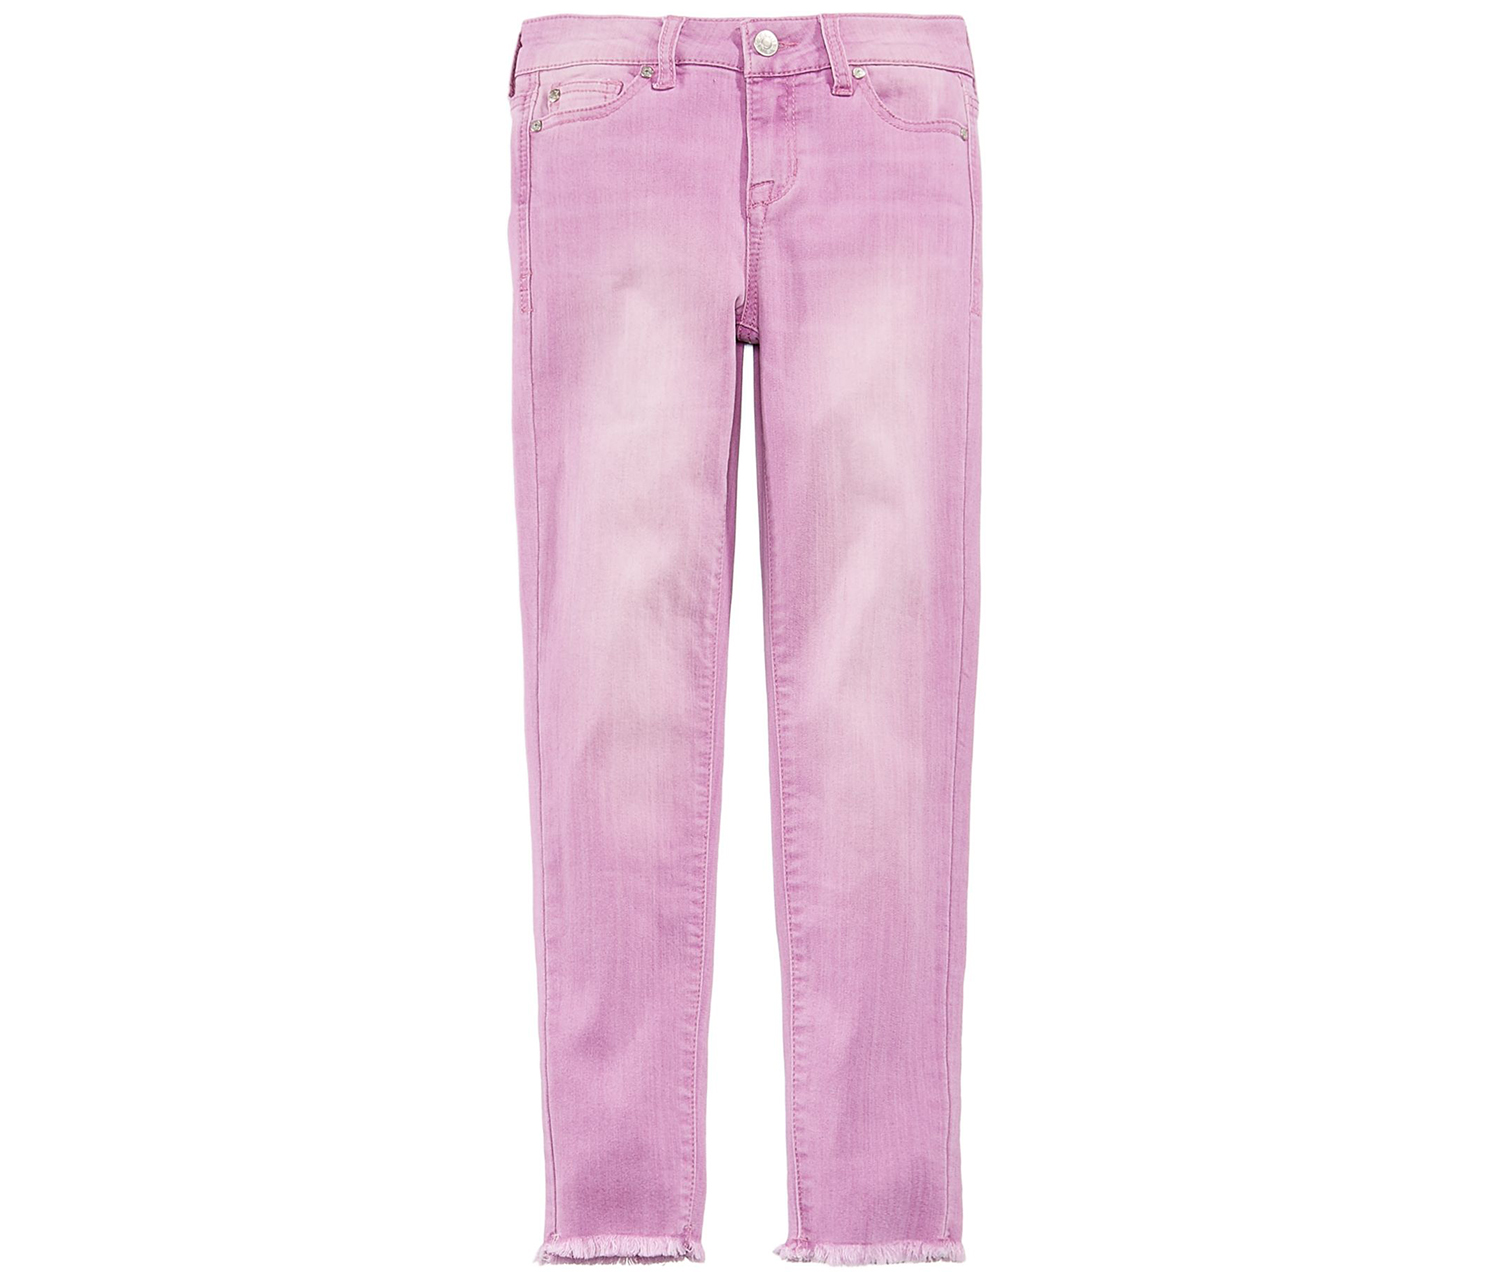 O/'NEILL Girls Ash Trousers Slim Fit Lilac Size 13-14 Years